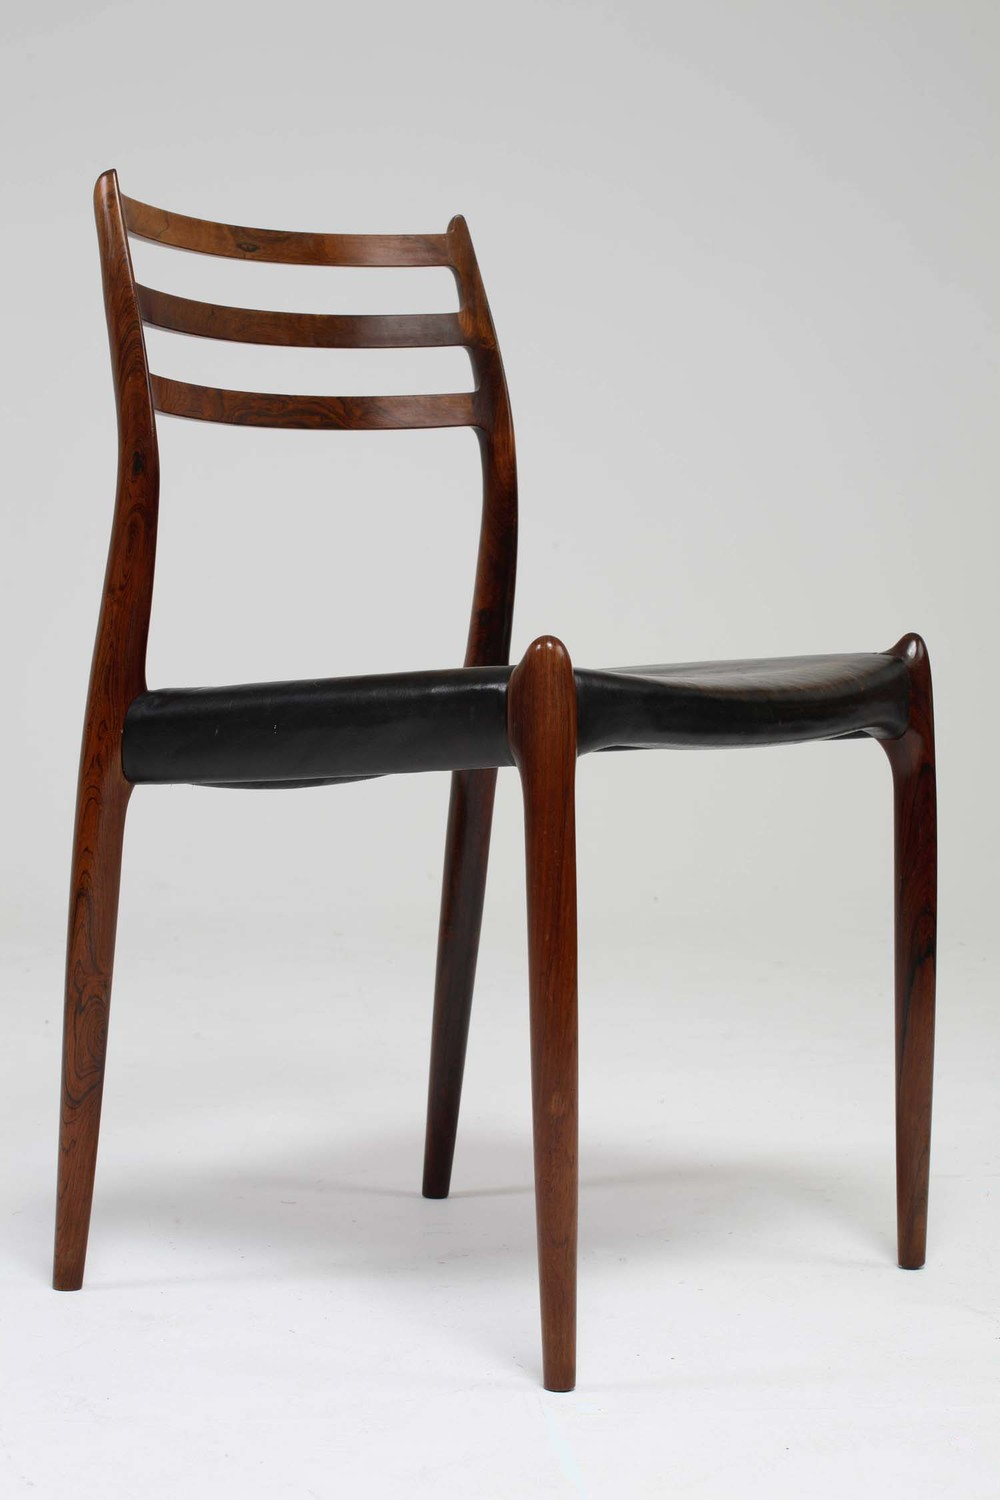 N O Moller 1962 Dining Chair Set in Original Black Leather  • made 1962-69 •